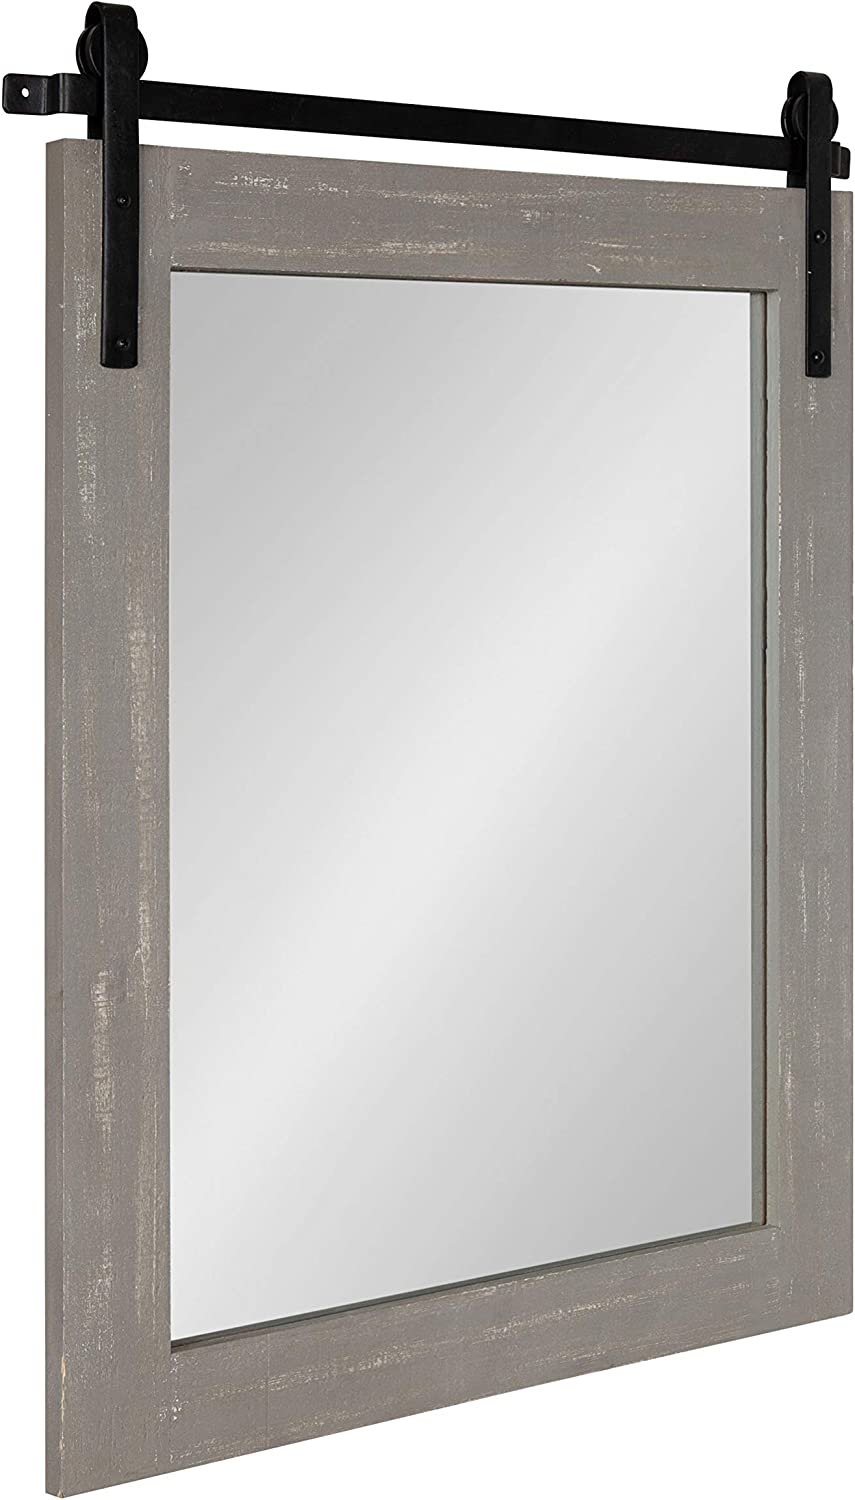 "Kate and Laurel Cates Rustic Wall Mirror, 22"" x 30"" Rustic Gray, Farmhouse Barn Door-Inspired Wall Decor"